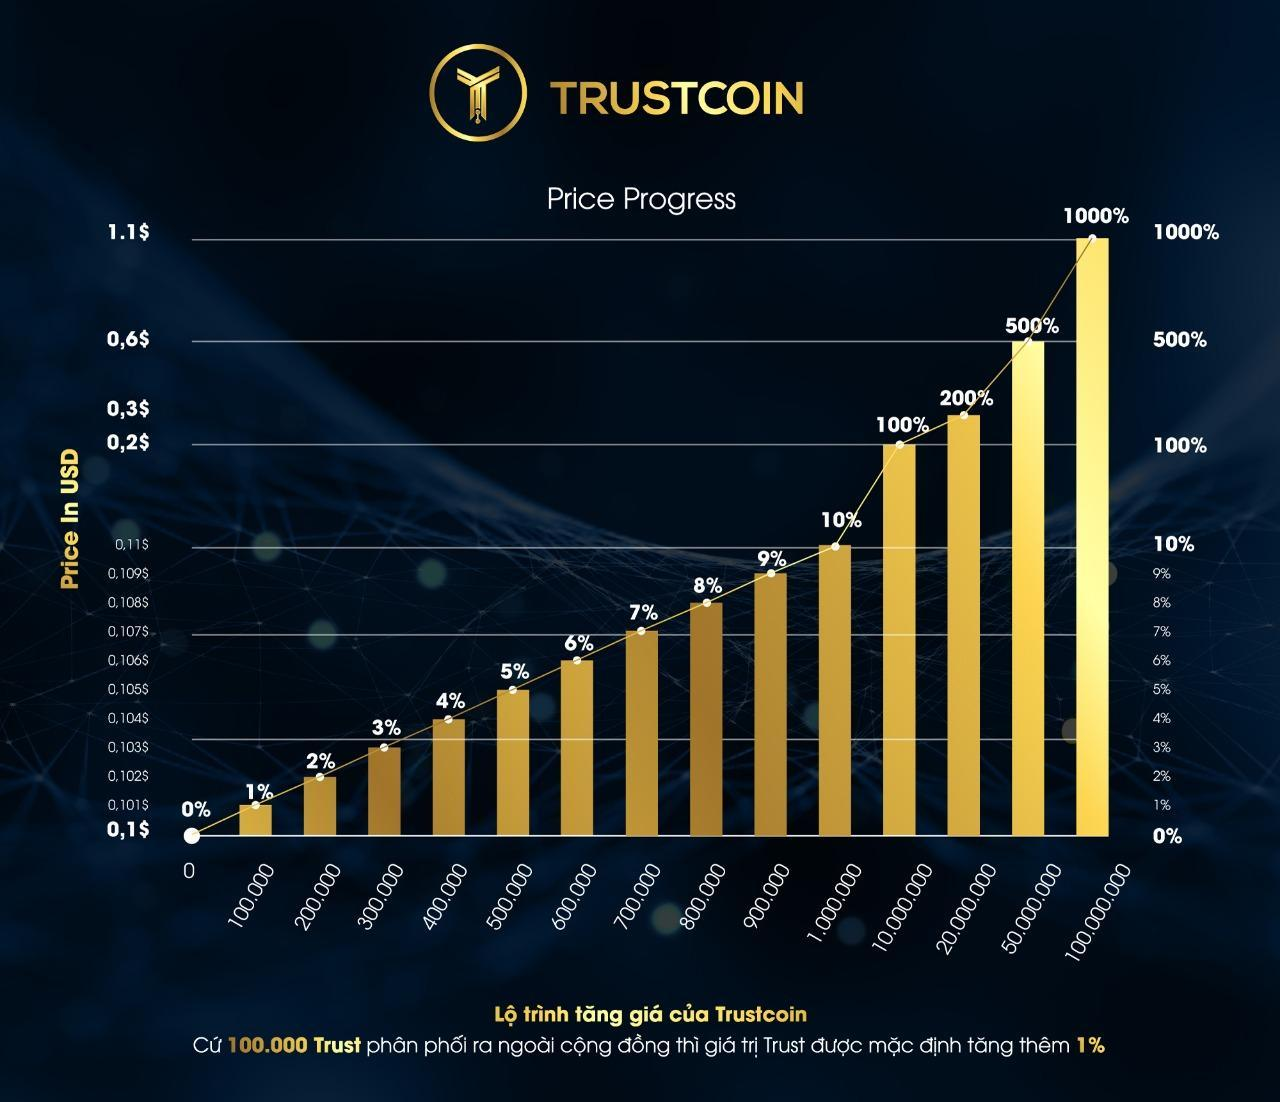 THE ADVANTAGES OF NEW COIN – TRUSTCOIN